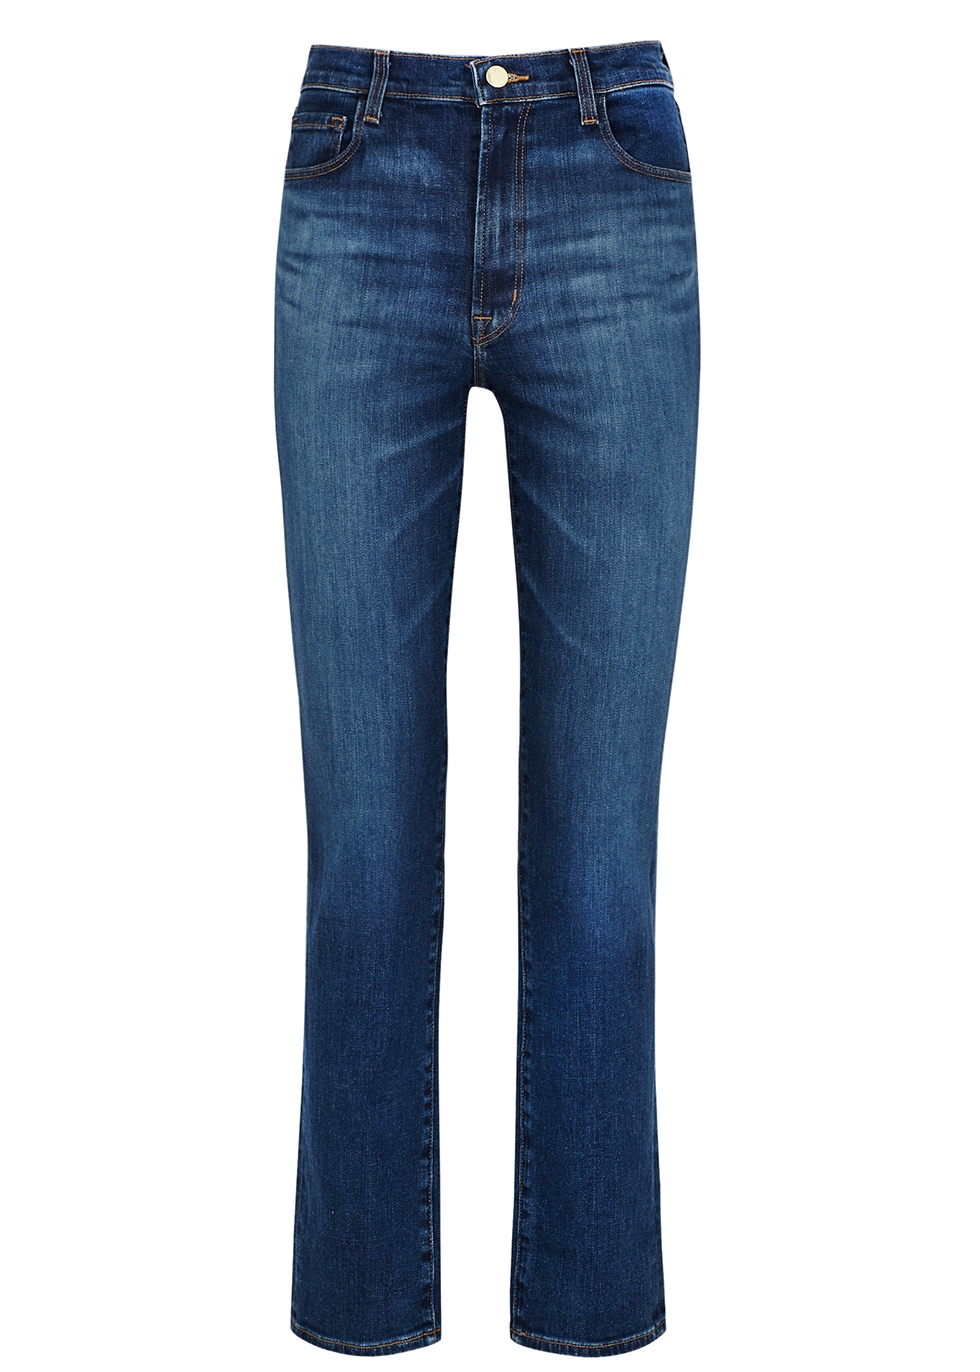 Tegan blue straight-leg jeans